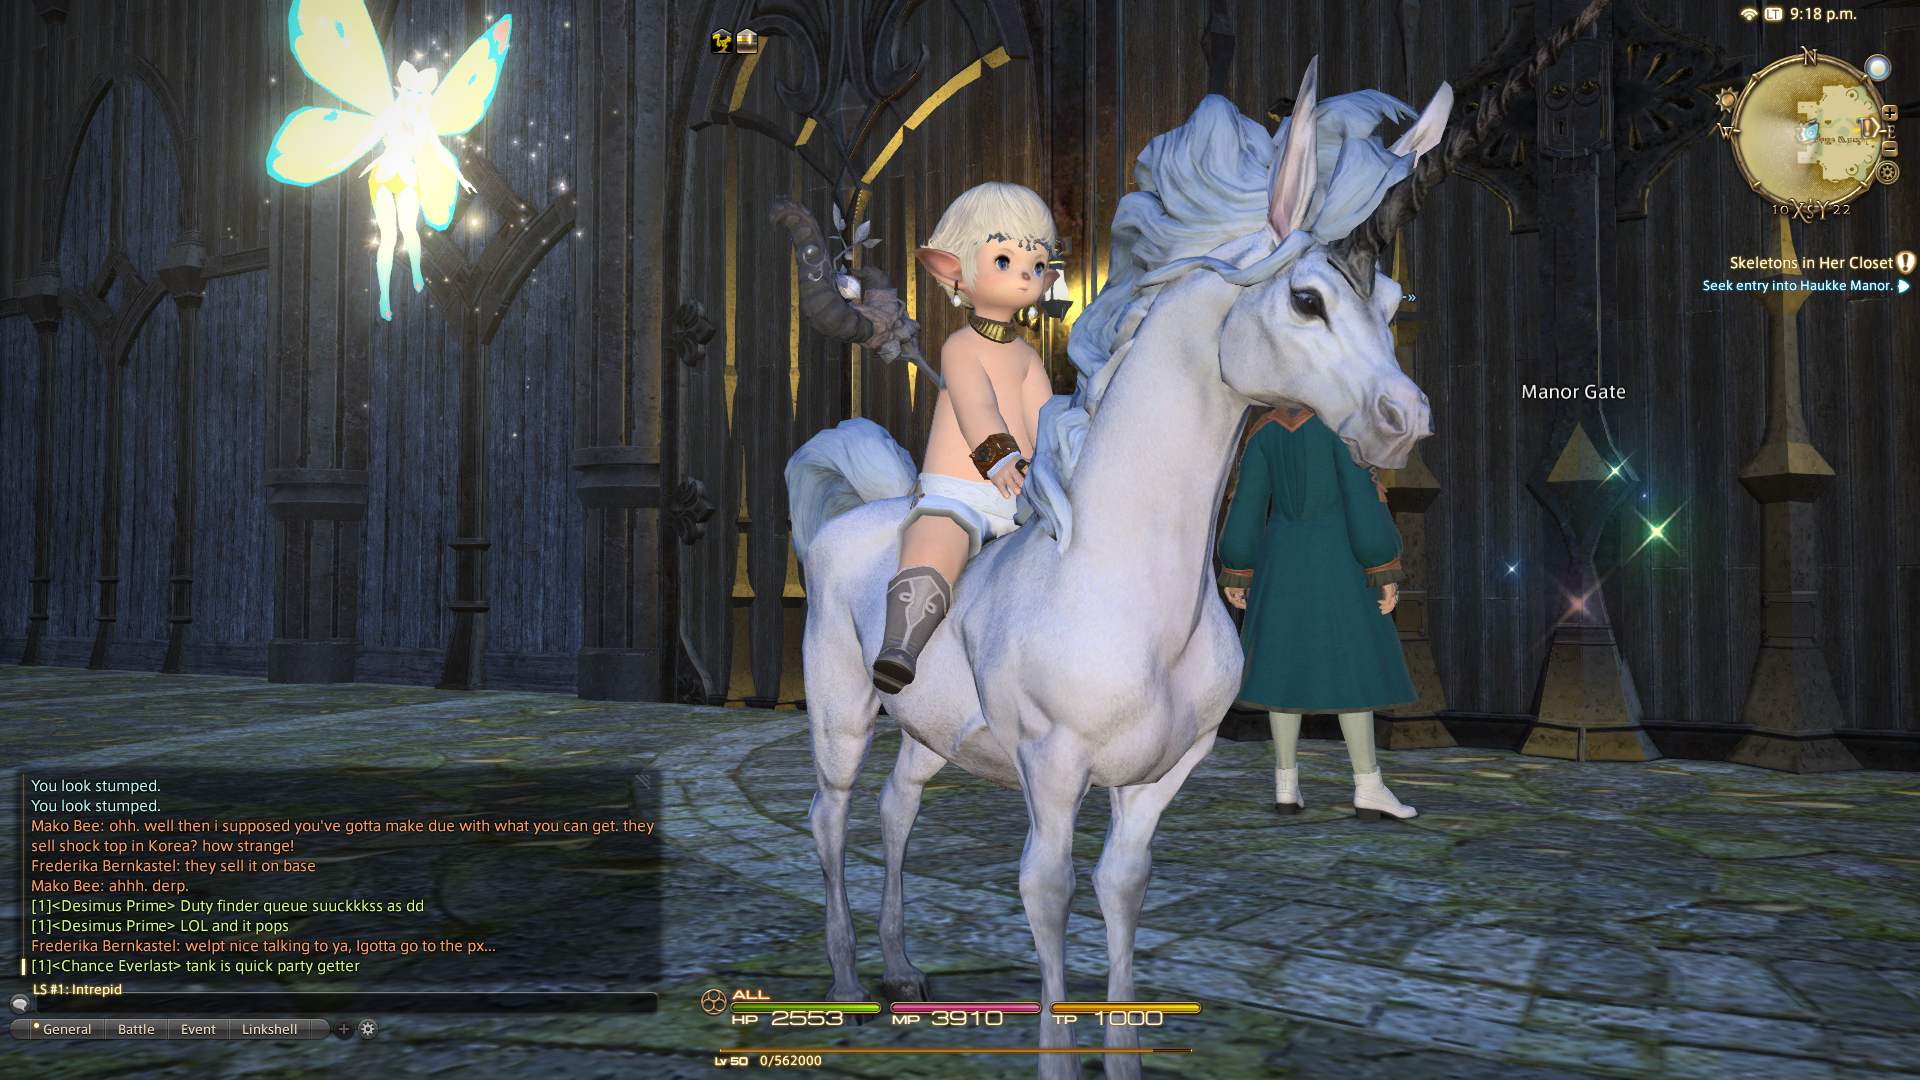 judah r ffxiv know ears really this used shitpost with just like deal forum over month entire grind inb4 lala thread picture cute lalafell coming that fate posting soon